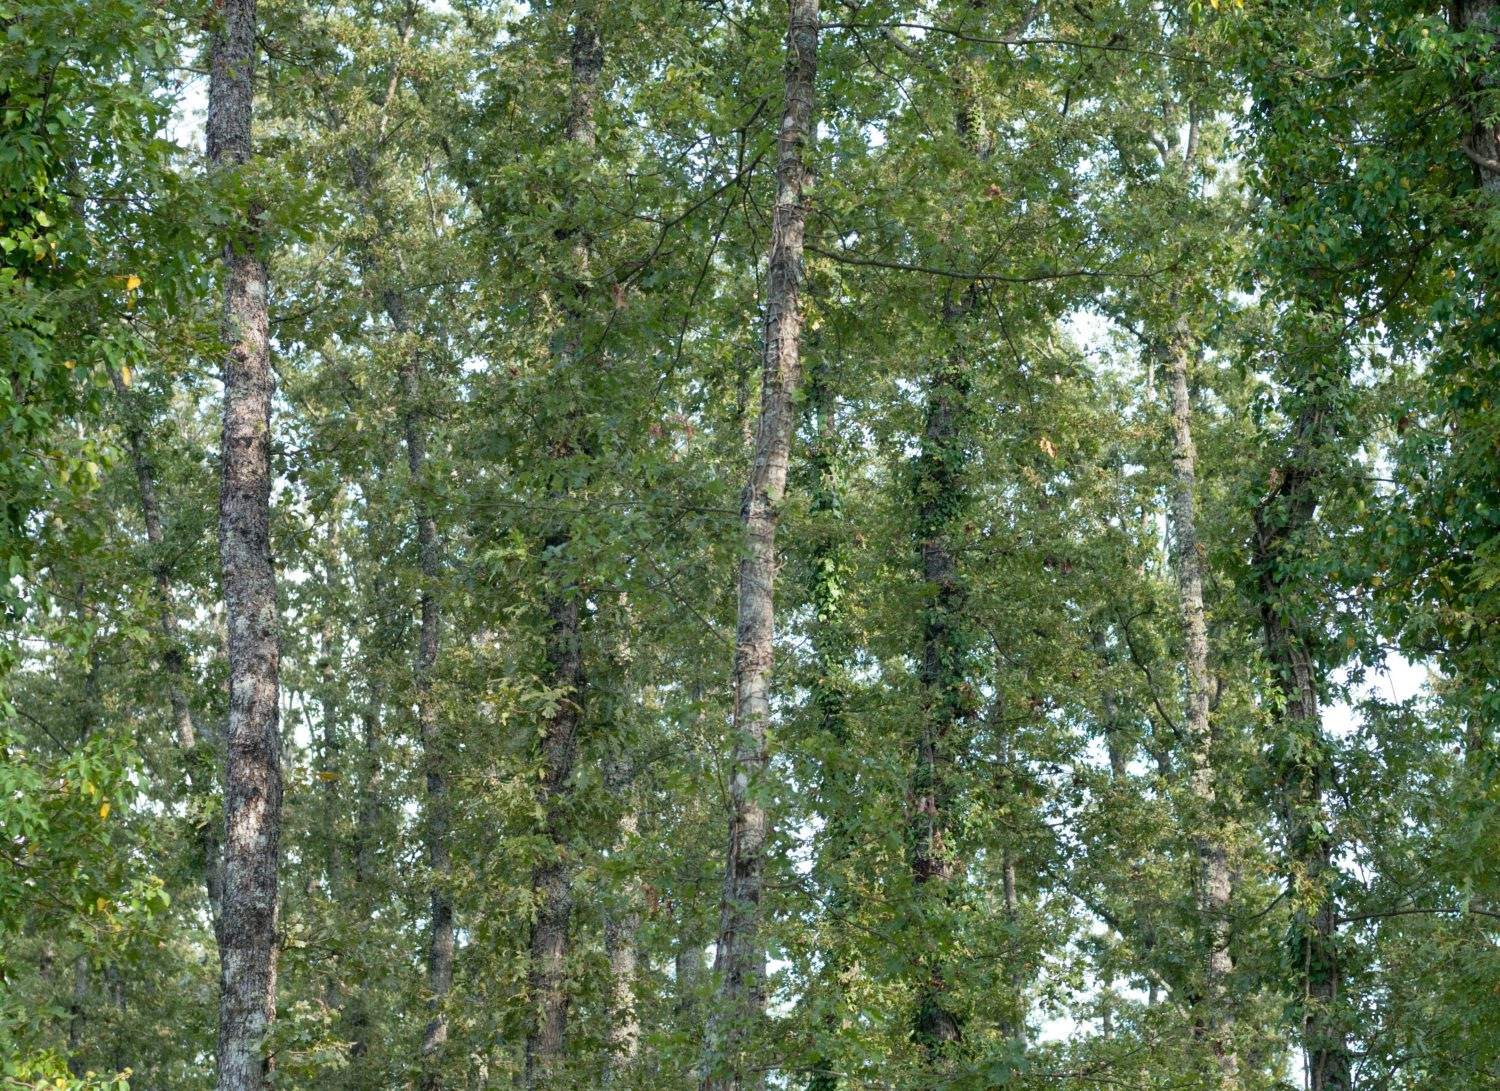 Pattern of forrest trees